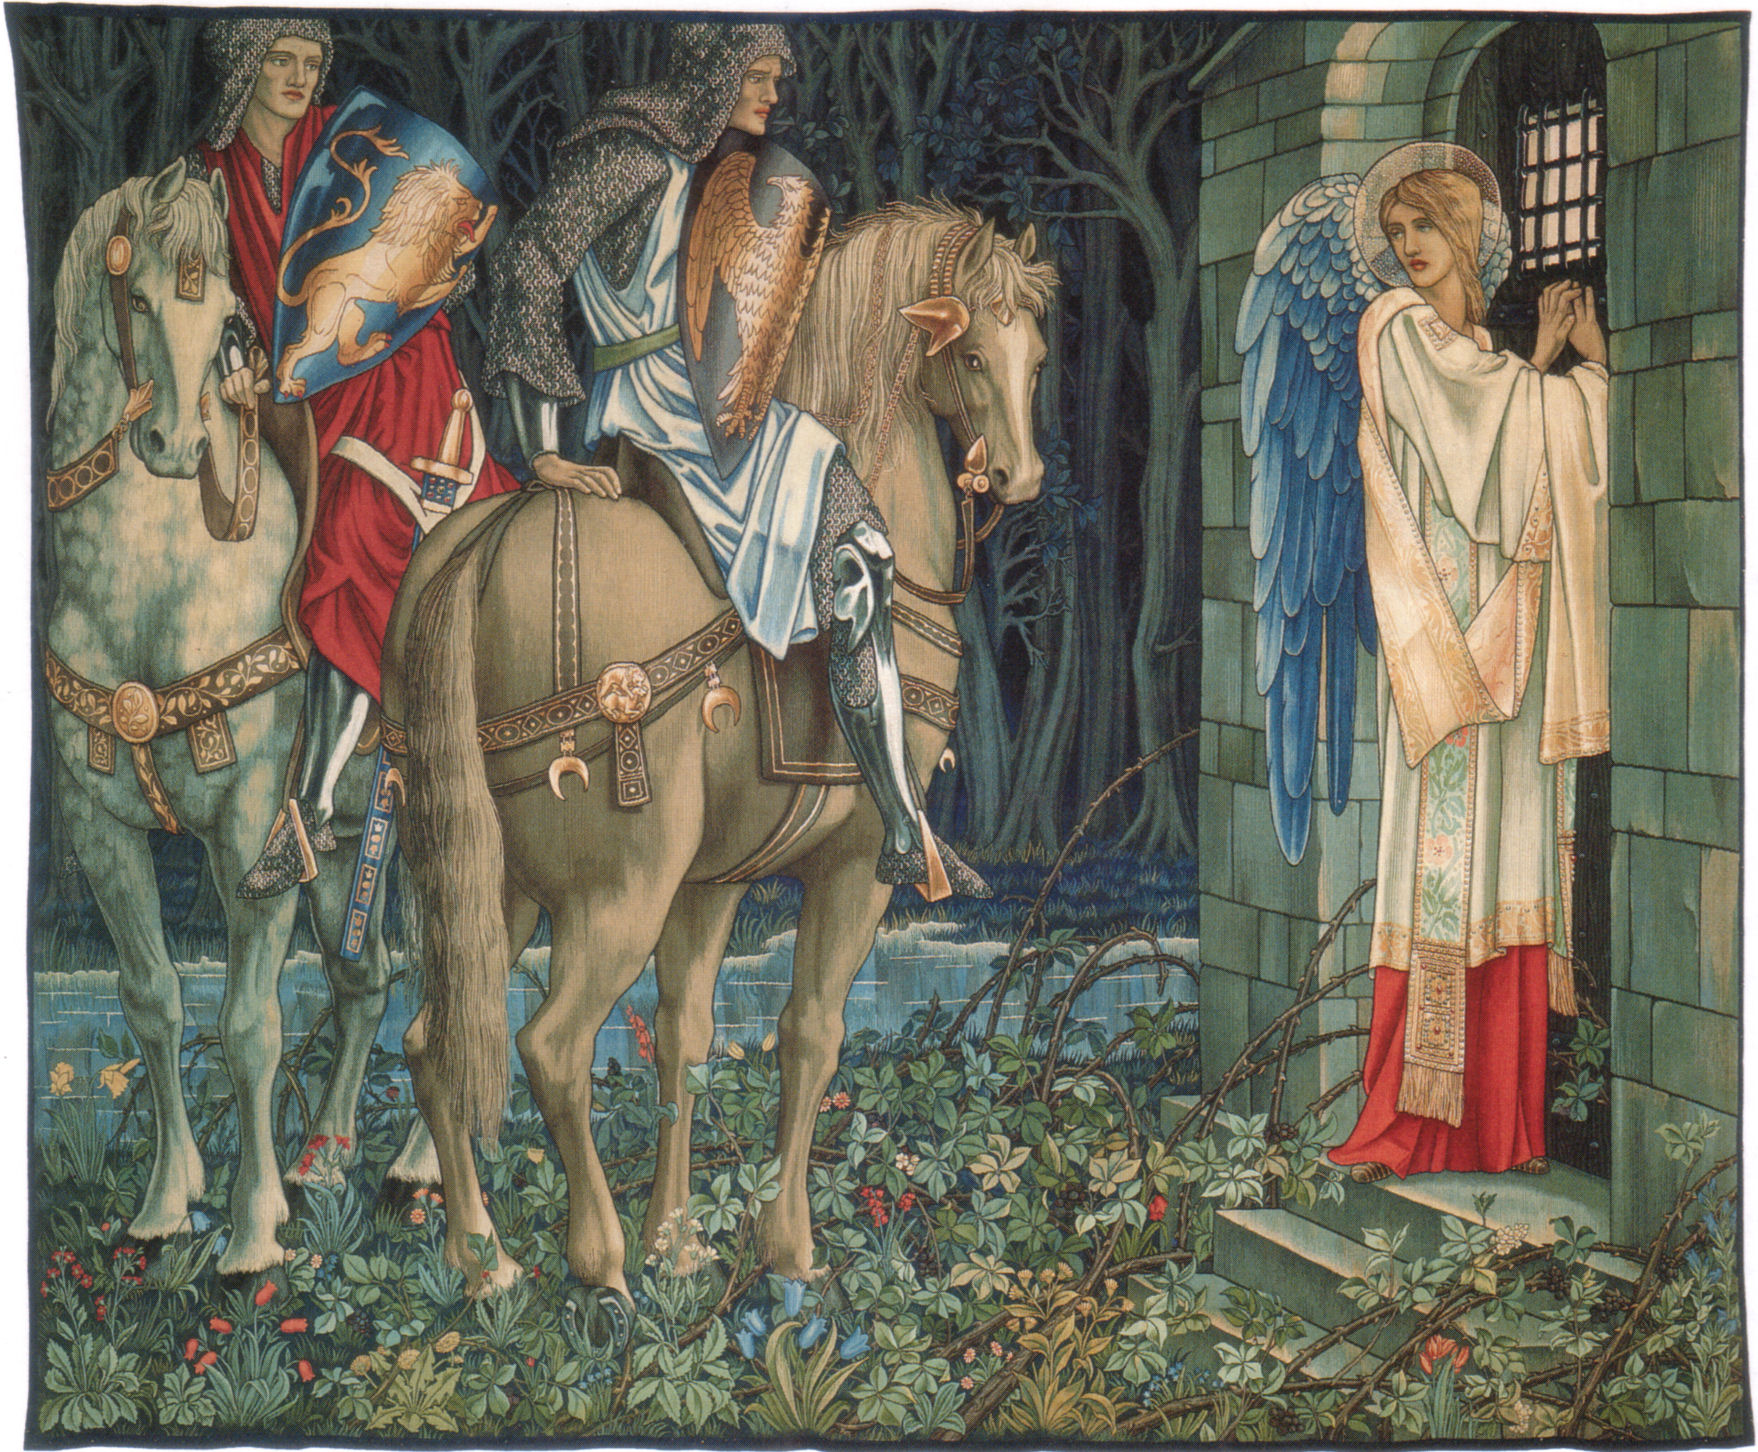 """an analysis of the sir gawain in the 14th century middle english chivalric romance What does a chivalric romance really represent in """"sir gawain and the late 14th-century middle english christian symbolism and chivalric ideals."""